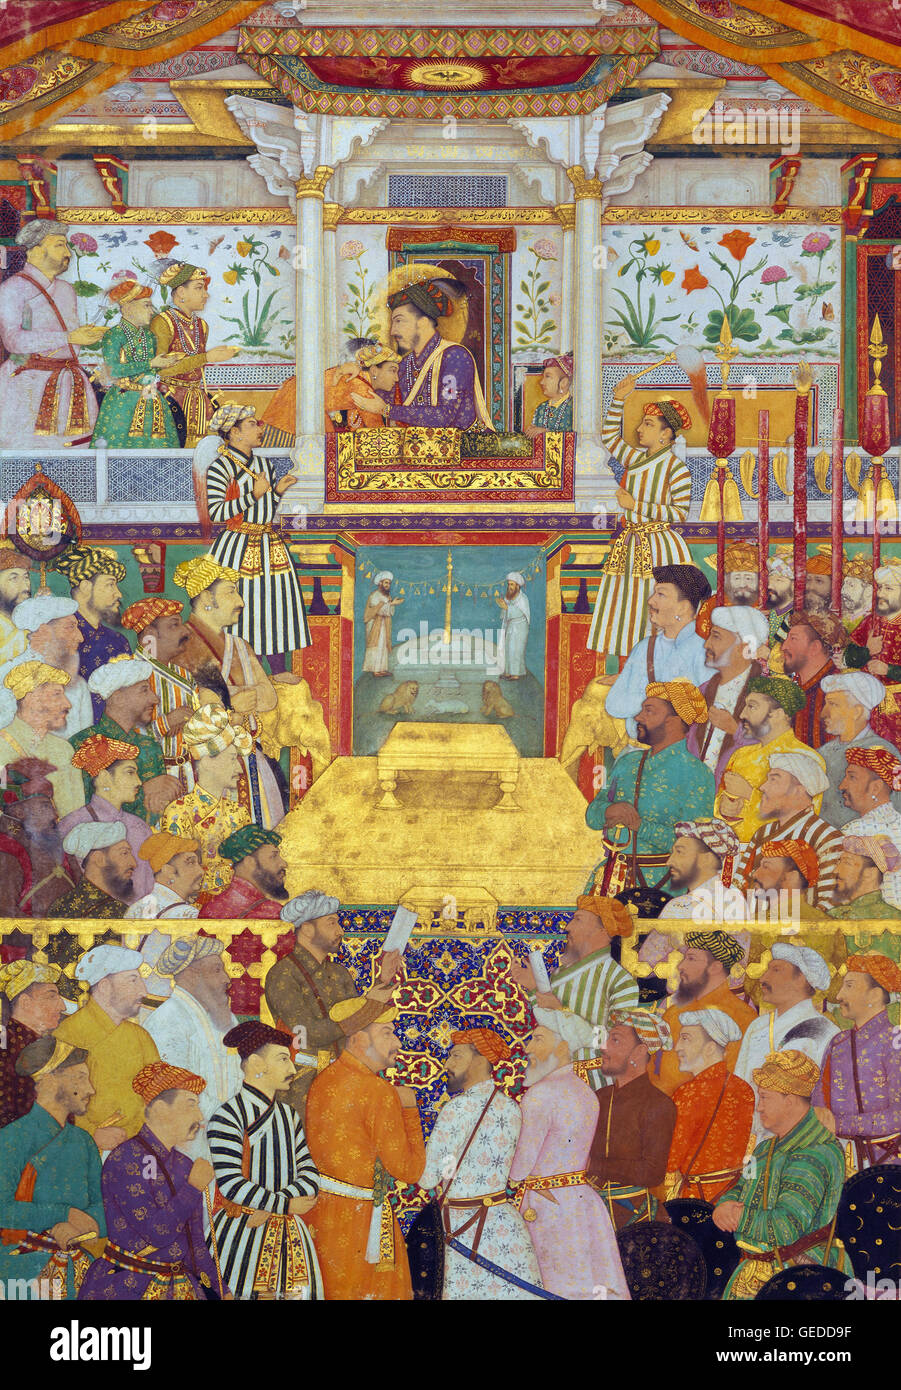 Bichitr - Padshahnama plate 10 - Shah-Jahan receives his three eldest sons and Asaf Khan Stock Photo